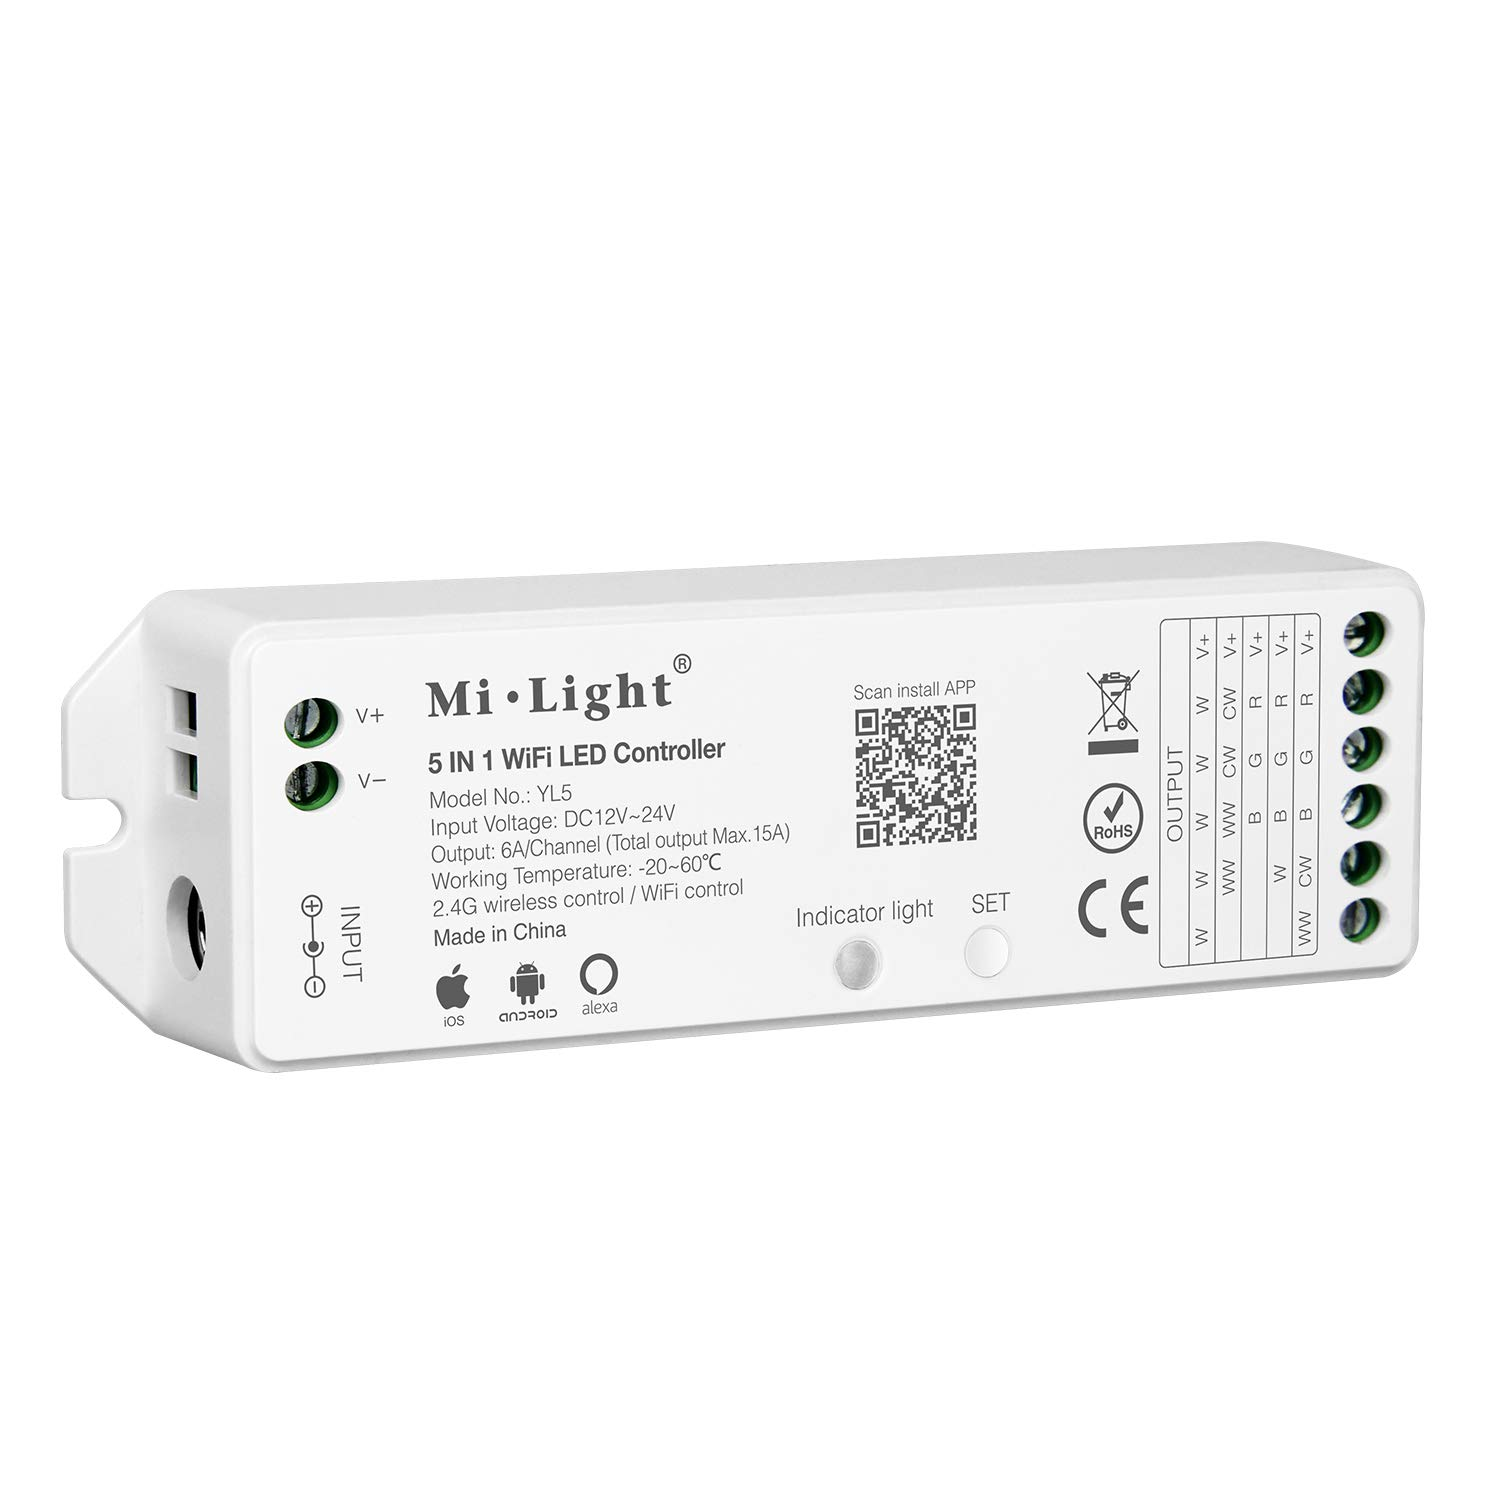 LIGHTEU®, Milight WiFi Led Controller Wireless RF2.4GHz  Echo Alexa Voice Control, WiFi Wireless Control and Smartphone APP Control Compatible with for Mi-Light Series Product, YT1